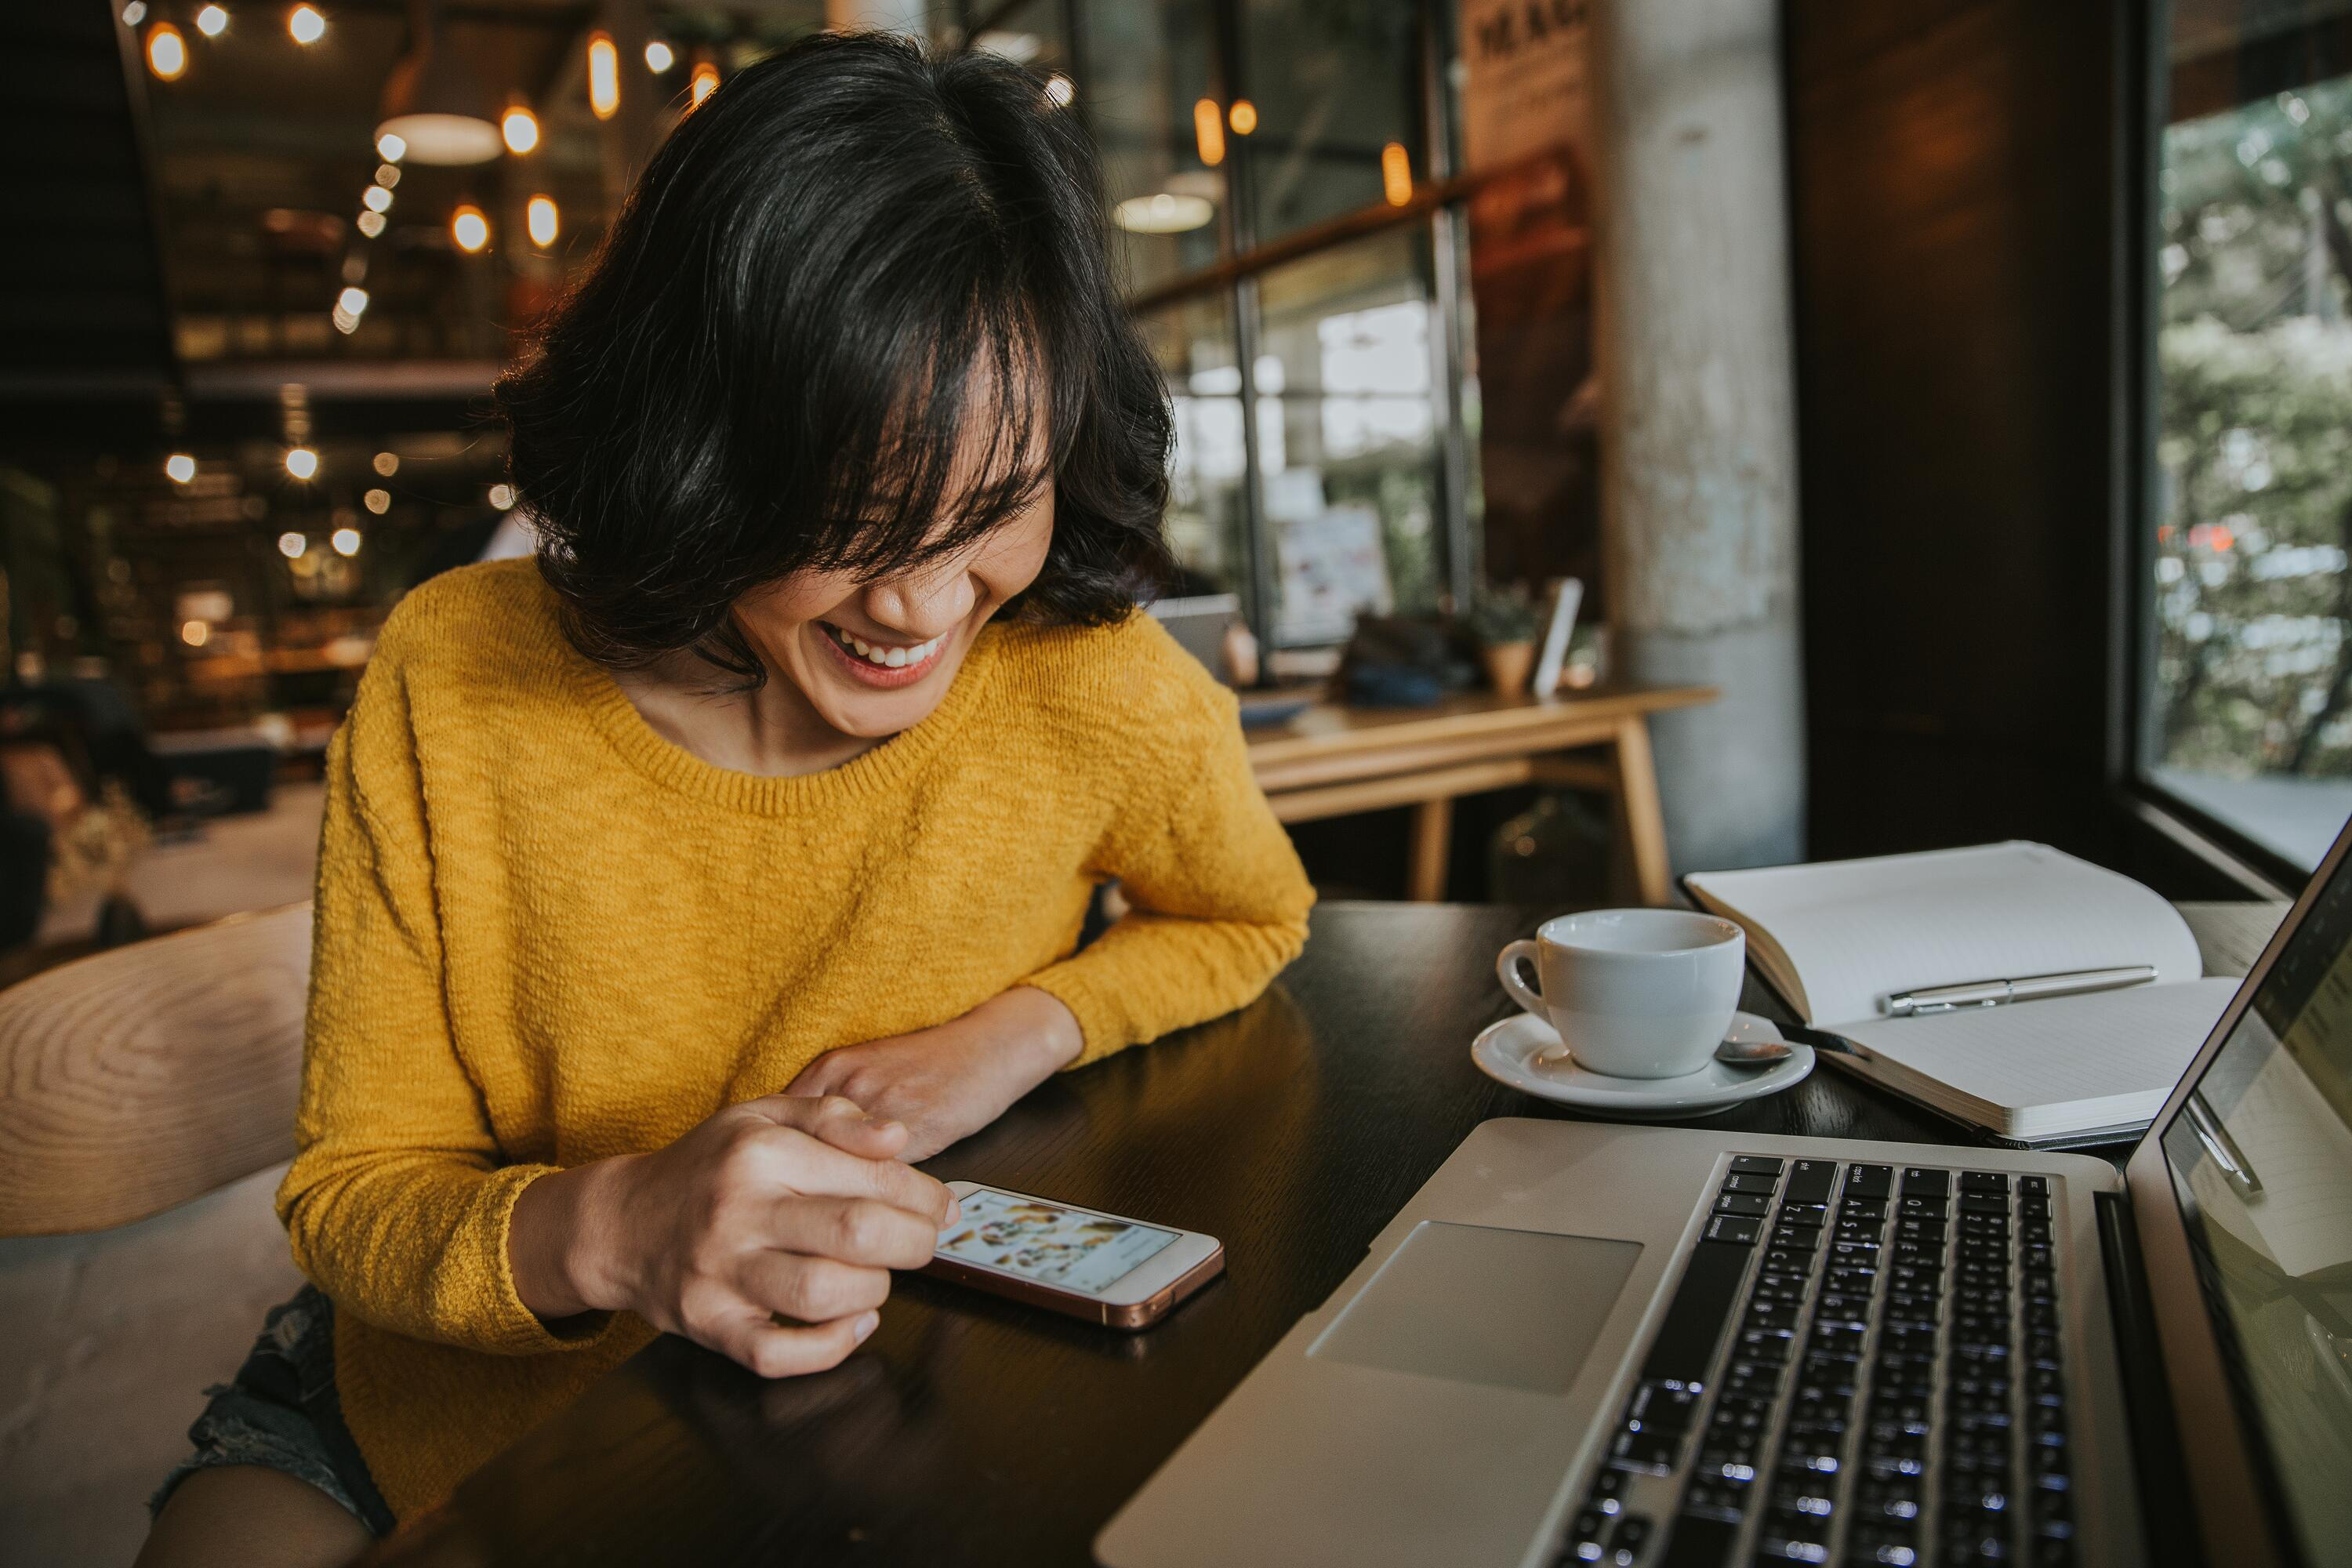 young-hipster-woman-smiling-sitting-in-coffee-shop-using-smartphone-smiling-technology-happy-internet_t20_XznLE6